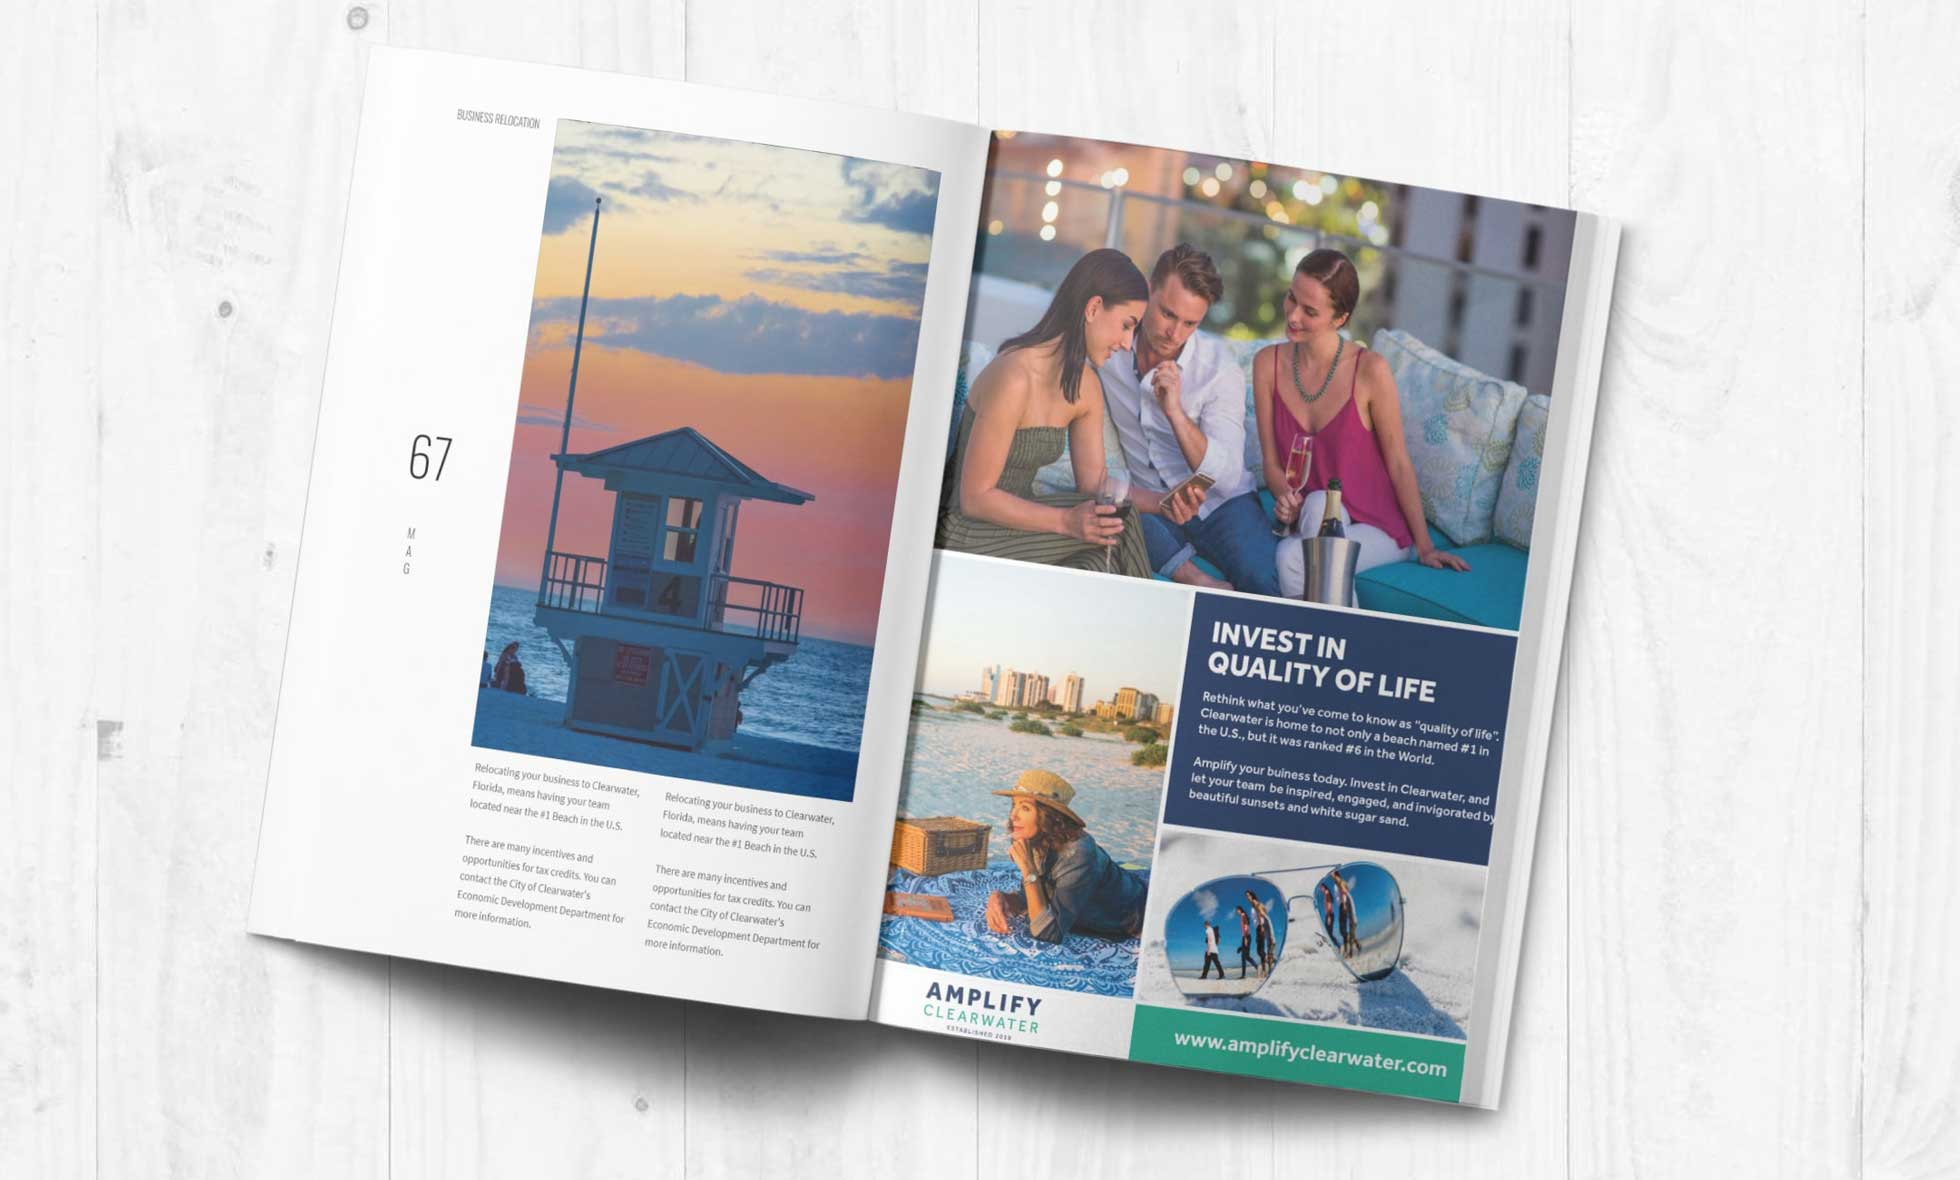 amplify-clearwater-full-page-advertisement-min